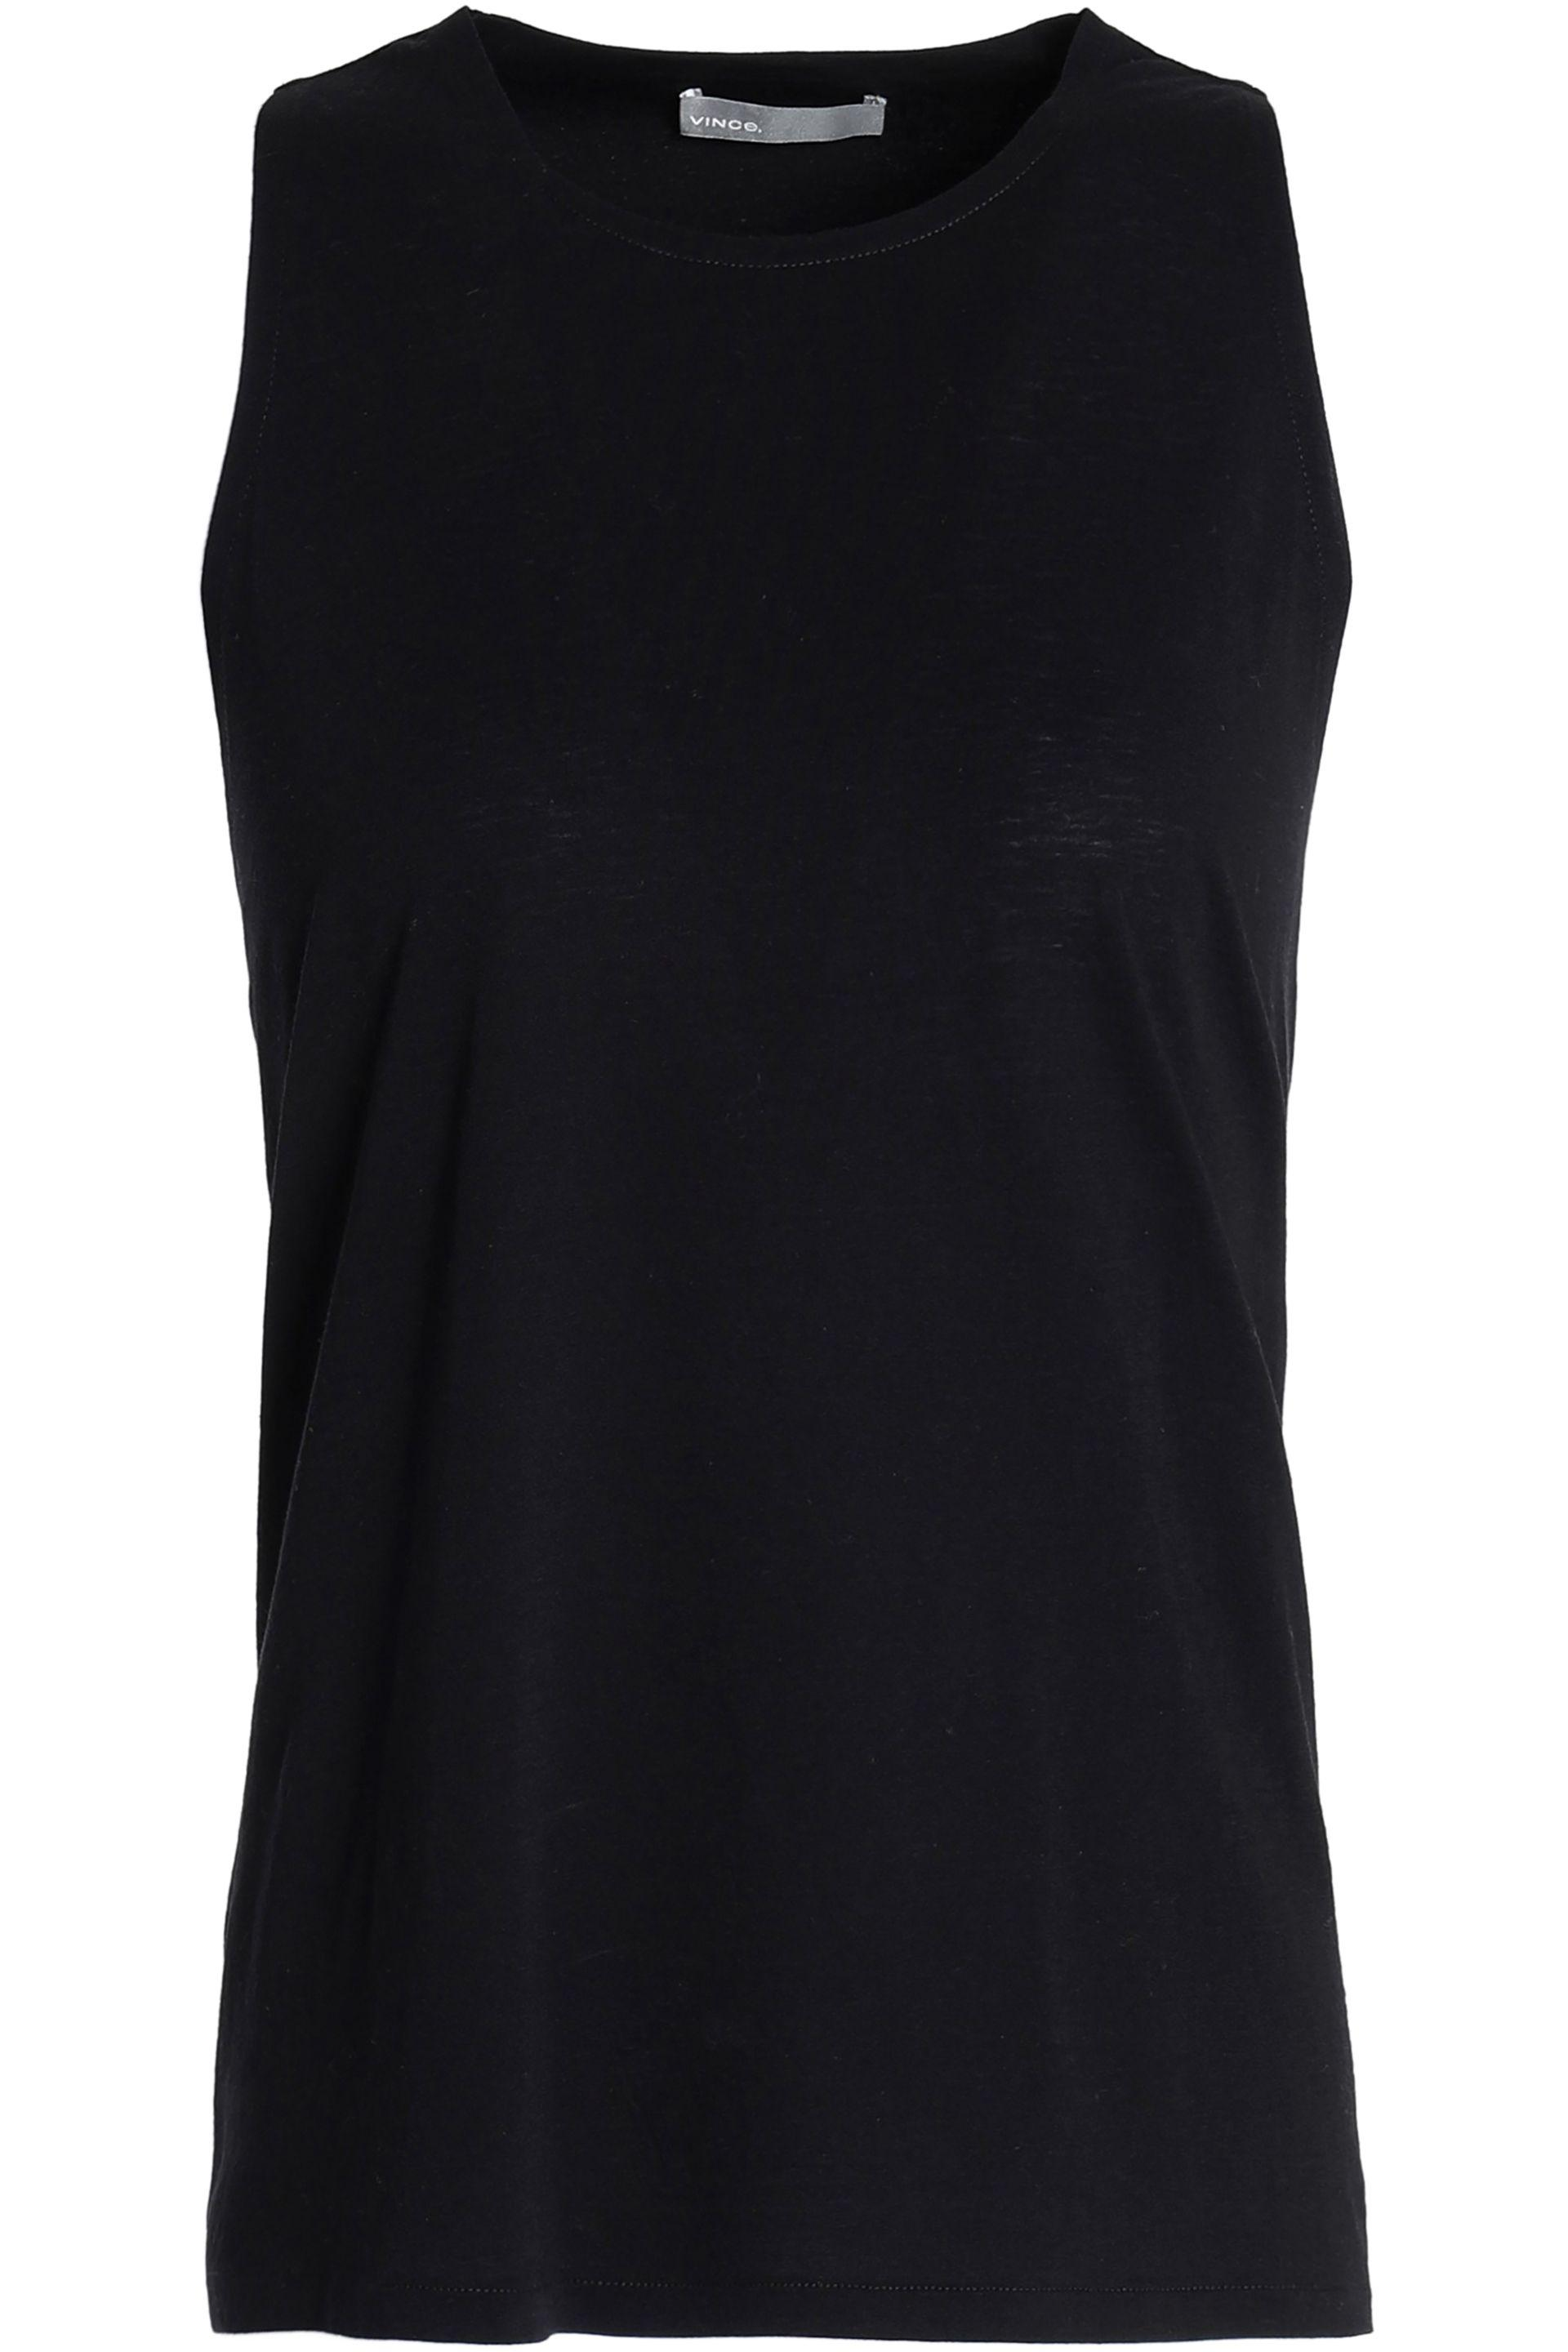 389c1e9ee79c3c Vince Woman Twist-back Cotton And Silk-blend Tank Midnight Blue in ...